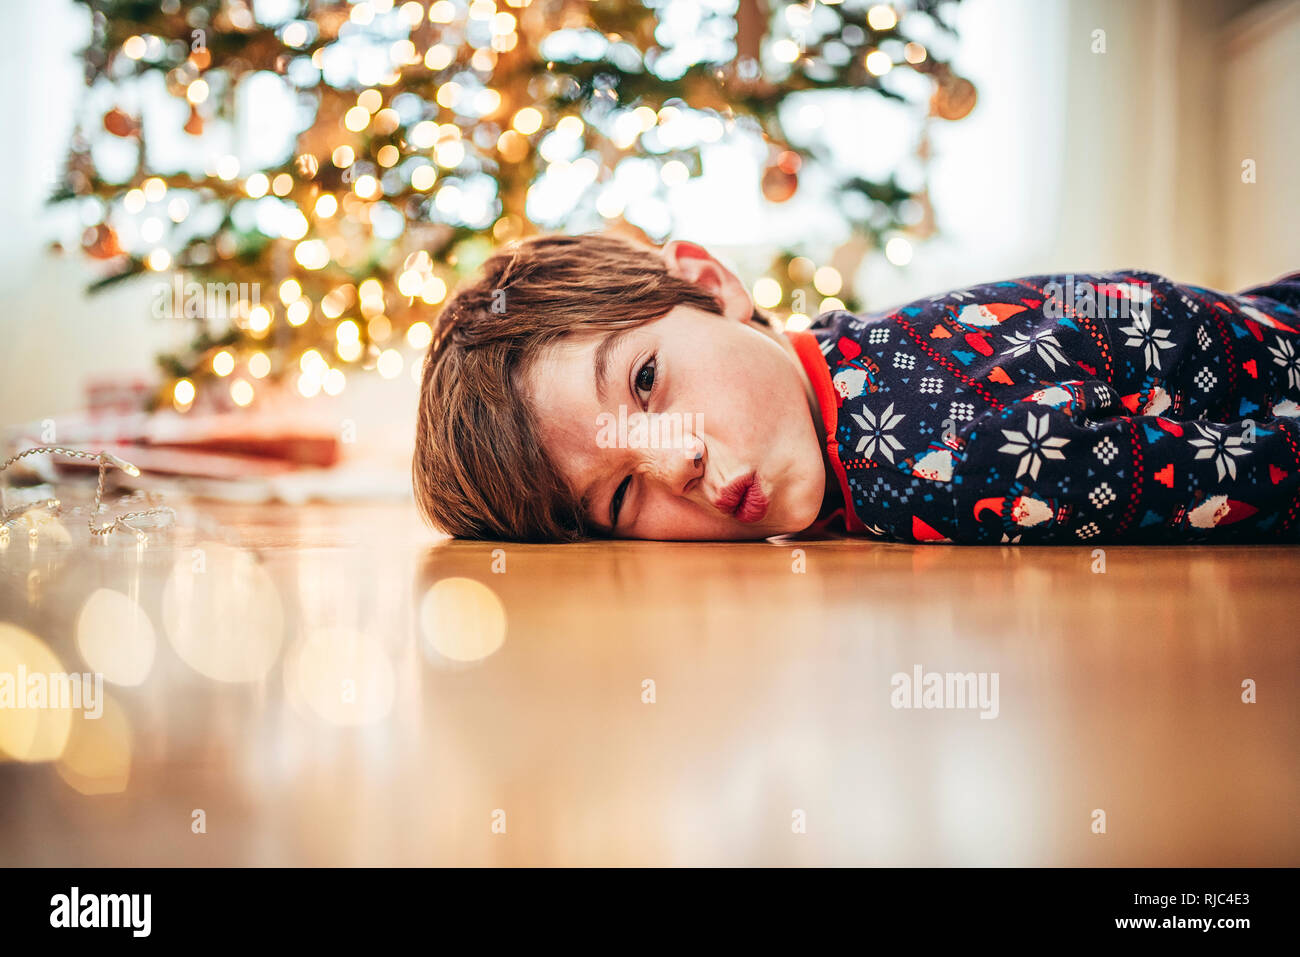 Boy lying on the floor in front of a Christmas tree pulling funny faces - Stock Image